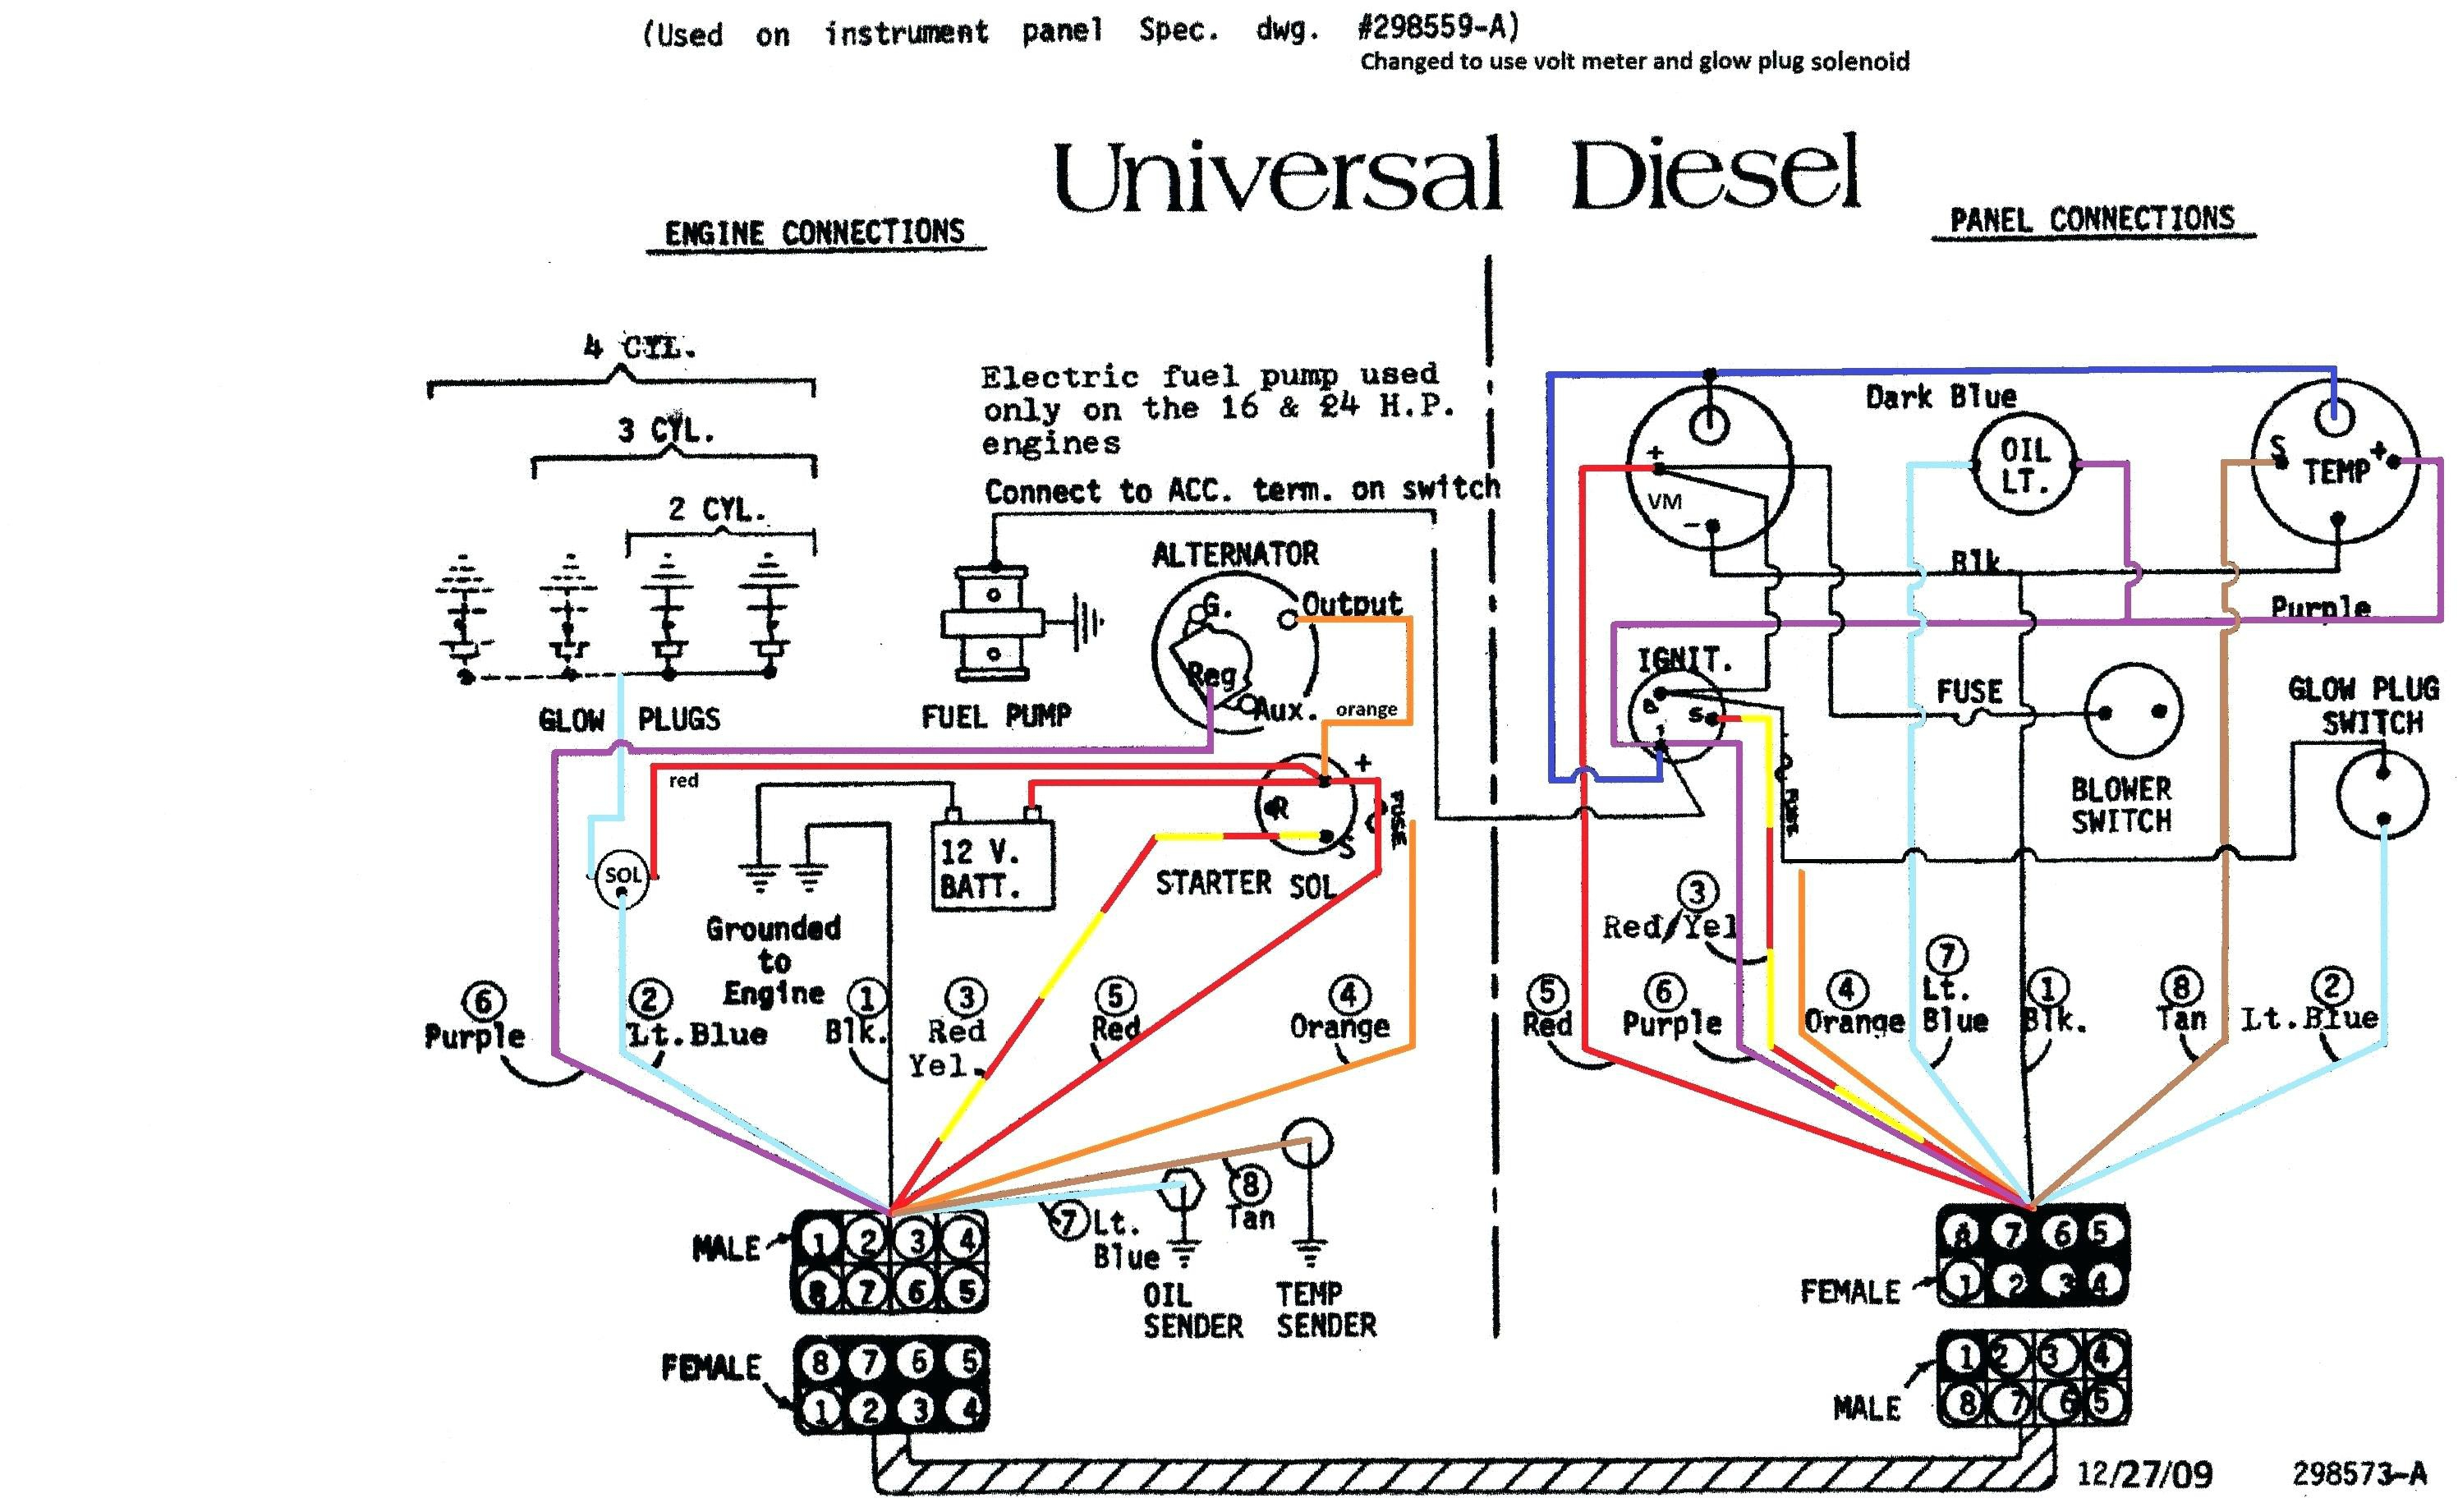 7 Way Trailer Plug Wiring Diagram Dodge | Wirings Diagram Dodge Trailer Plug Wiring Diagram on dodge 7 pin trailer plug diagram, dodge pickup trailer wiring, dodge trailer wiring harness diagram, 7 round trailer plug diagram, dodge lights wiring diagram, dodge 3500 trailer wiring diagram, trailer wiring color code diagram, 7 prong trailer plug diagram, 2012 dodge ram wiring diagram, dodge 2500 trailer wiring diagram, 7-wire rv plug diagram, 7 blade trailer wiring diagram, dodge voltage regulator wiring diagram, 2002 dodge trailer wiring diagram, dodge trailer wiring harness problem, dodge trailer wiring adapter, dodge ram trailer wiring, 7 pin trailer wiring diagram, dodge trailer wiring colors, dodge electronic ignition wiring diagram,